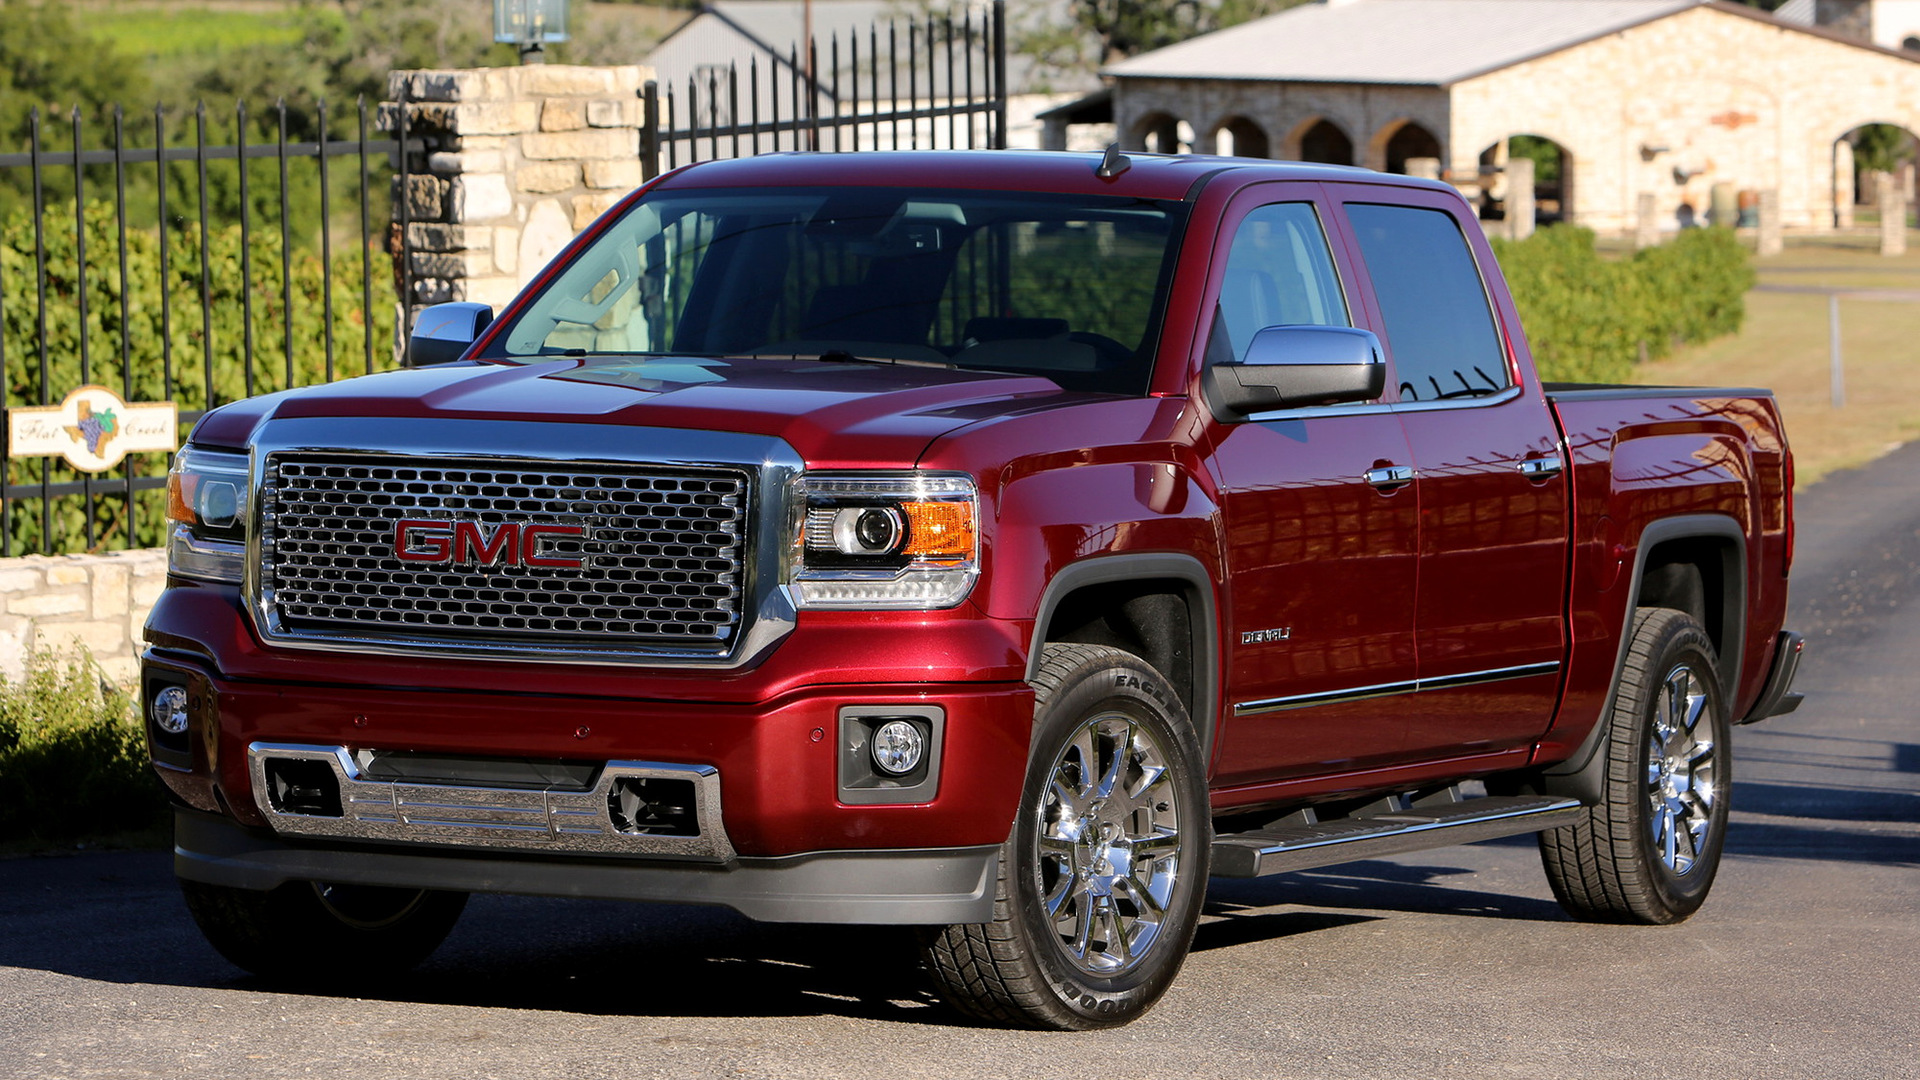 2018 GMC Sierra HD photo - 2